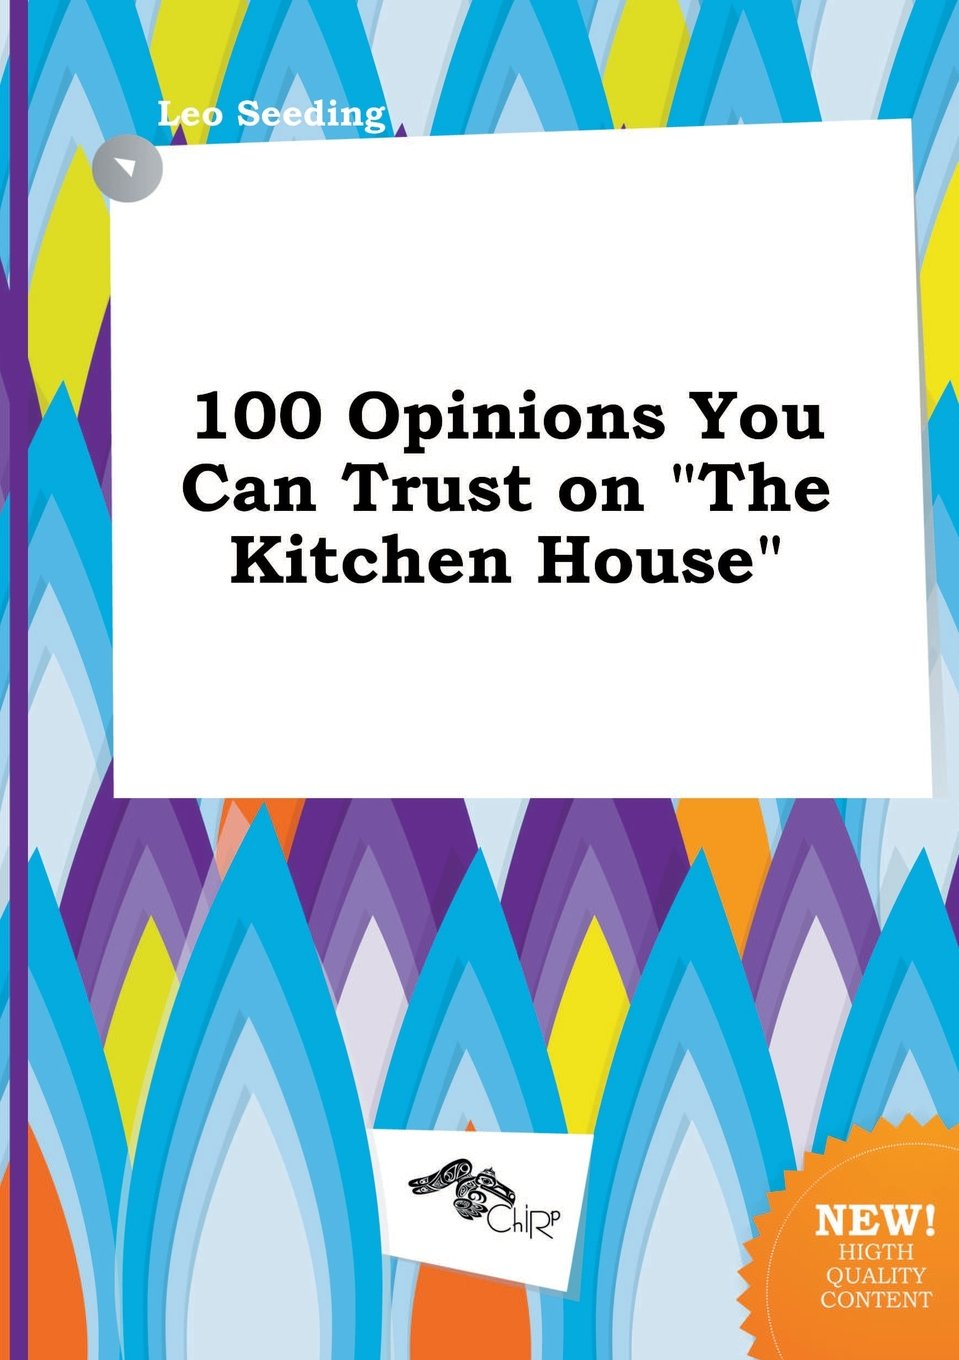 100 Opinions You Can Trust on the Kitchen House: Leo Seeding ...